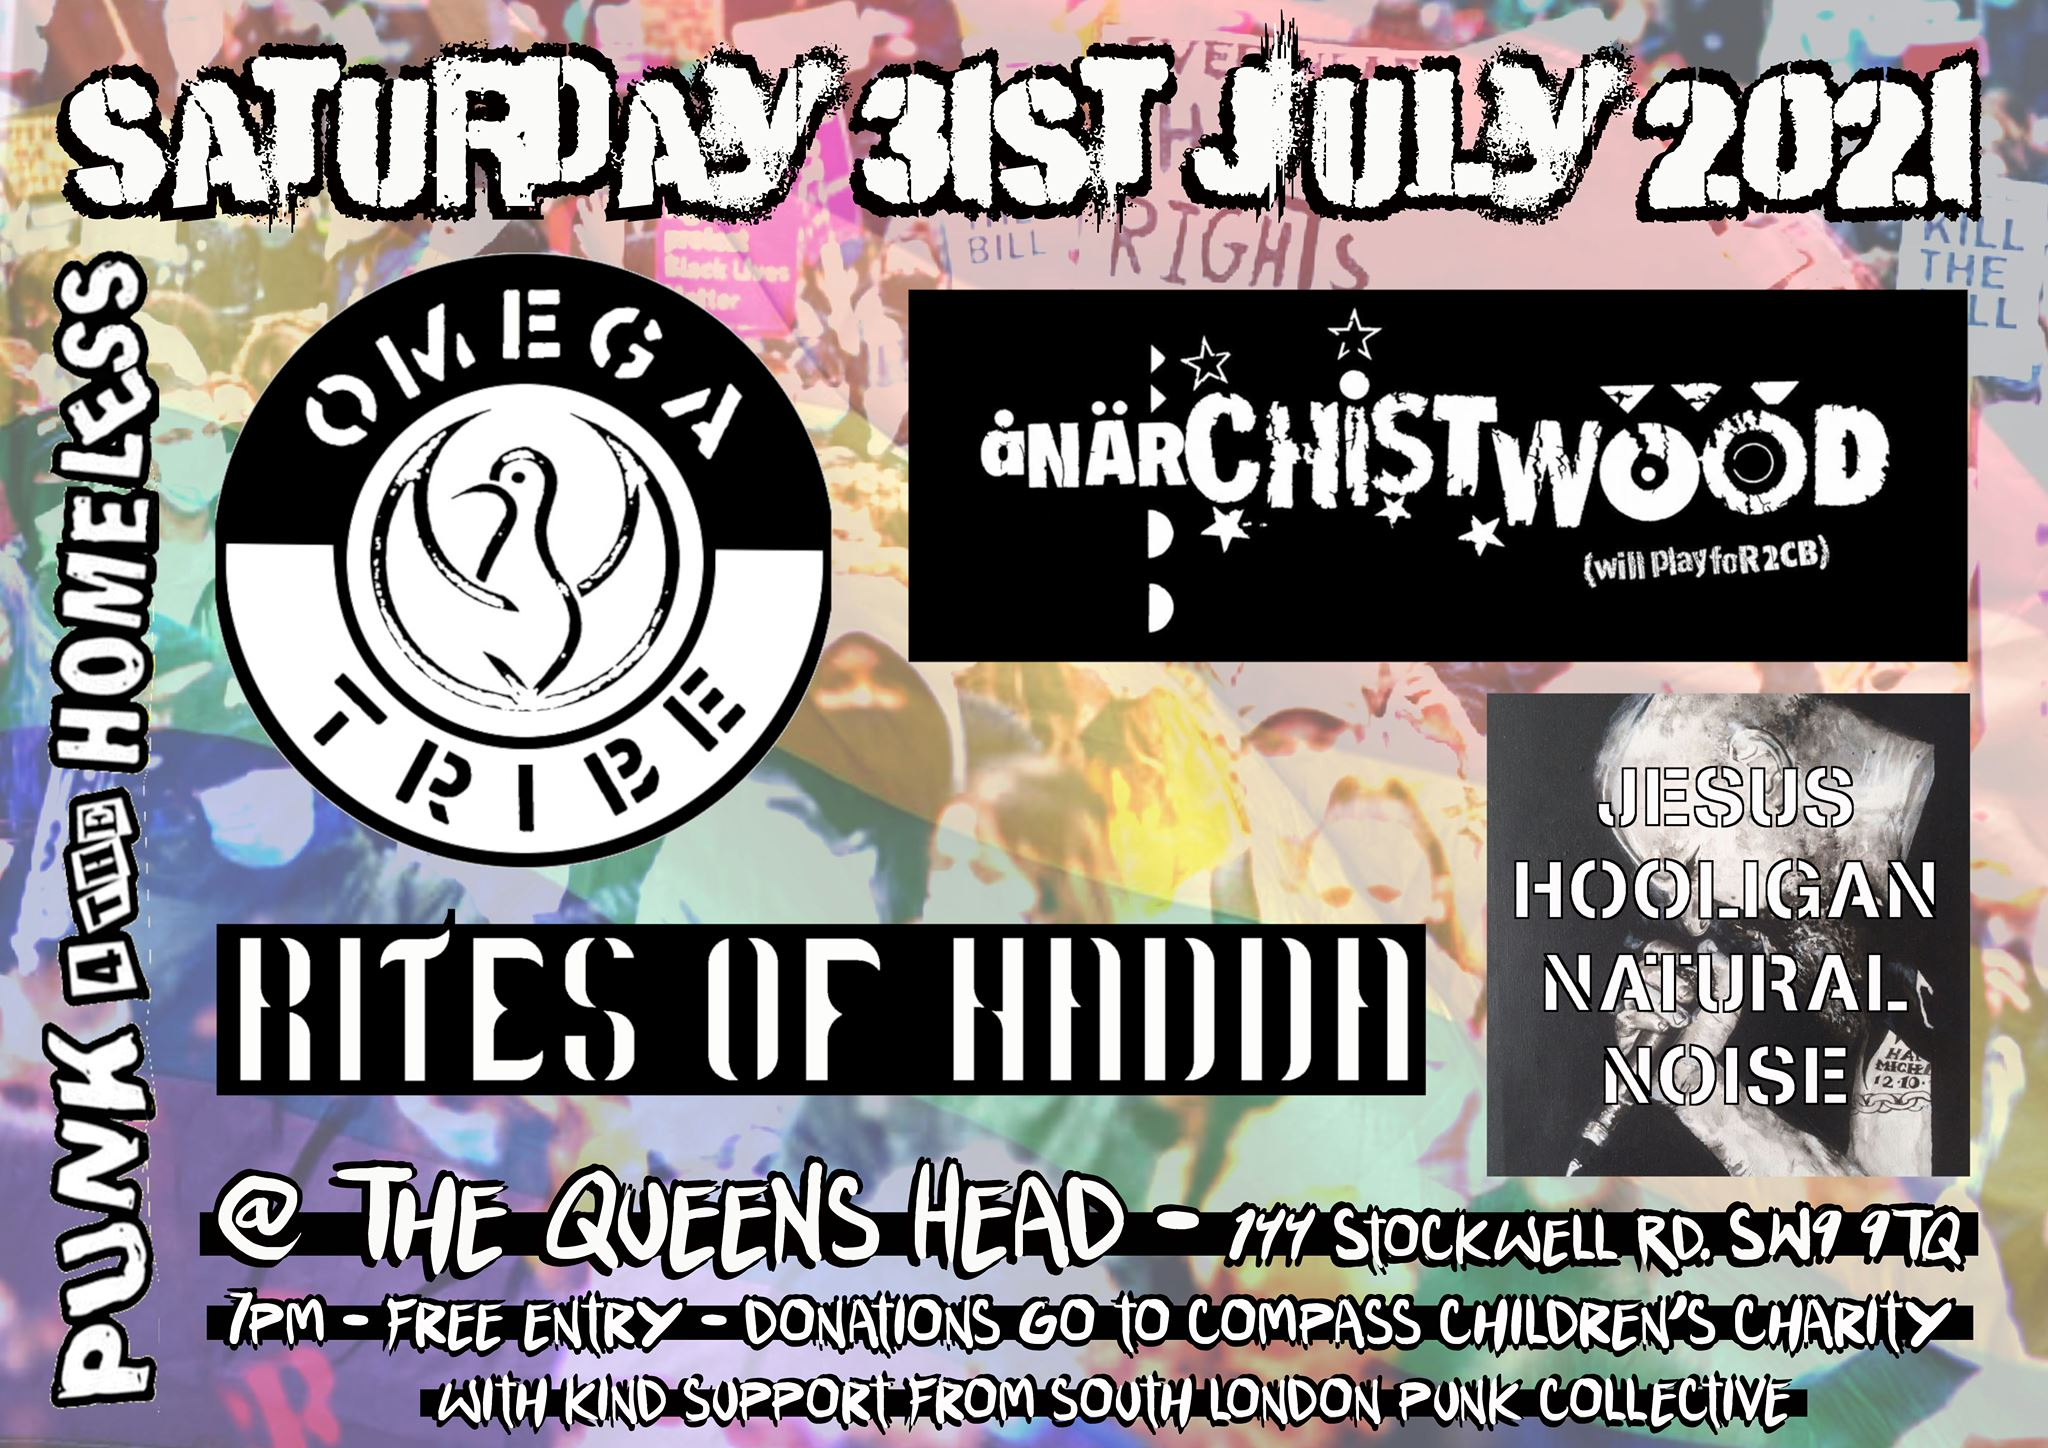 Poster for Omega Tribe, Anarchistwood, Rites of Hadda and Jesus Hooligan Natural Noise gig London 31 July 2021